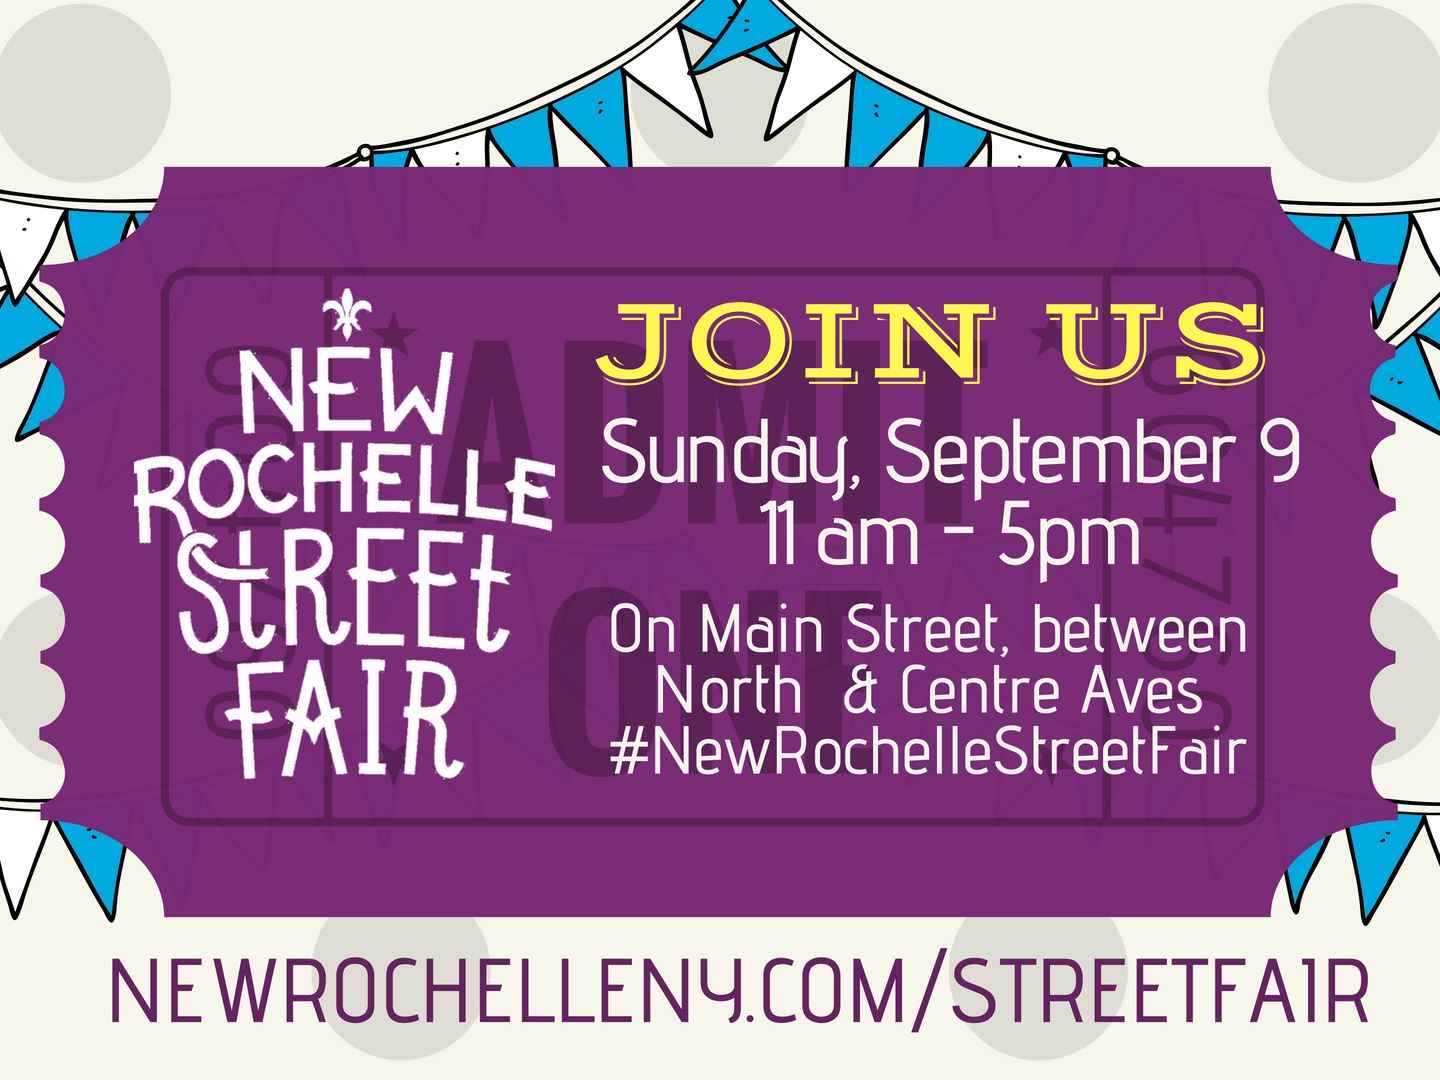 New Rochelle Street Fair 2018